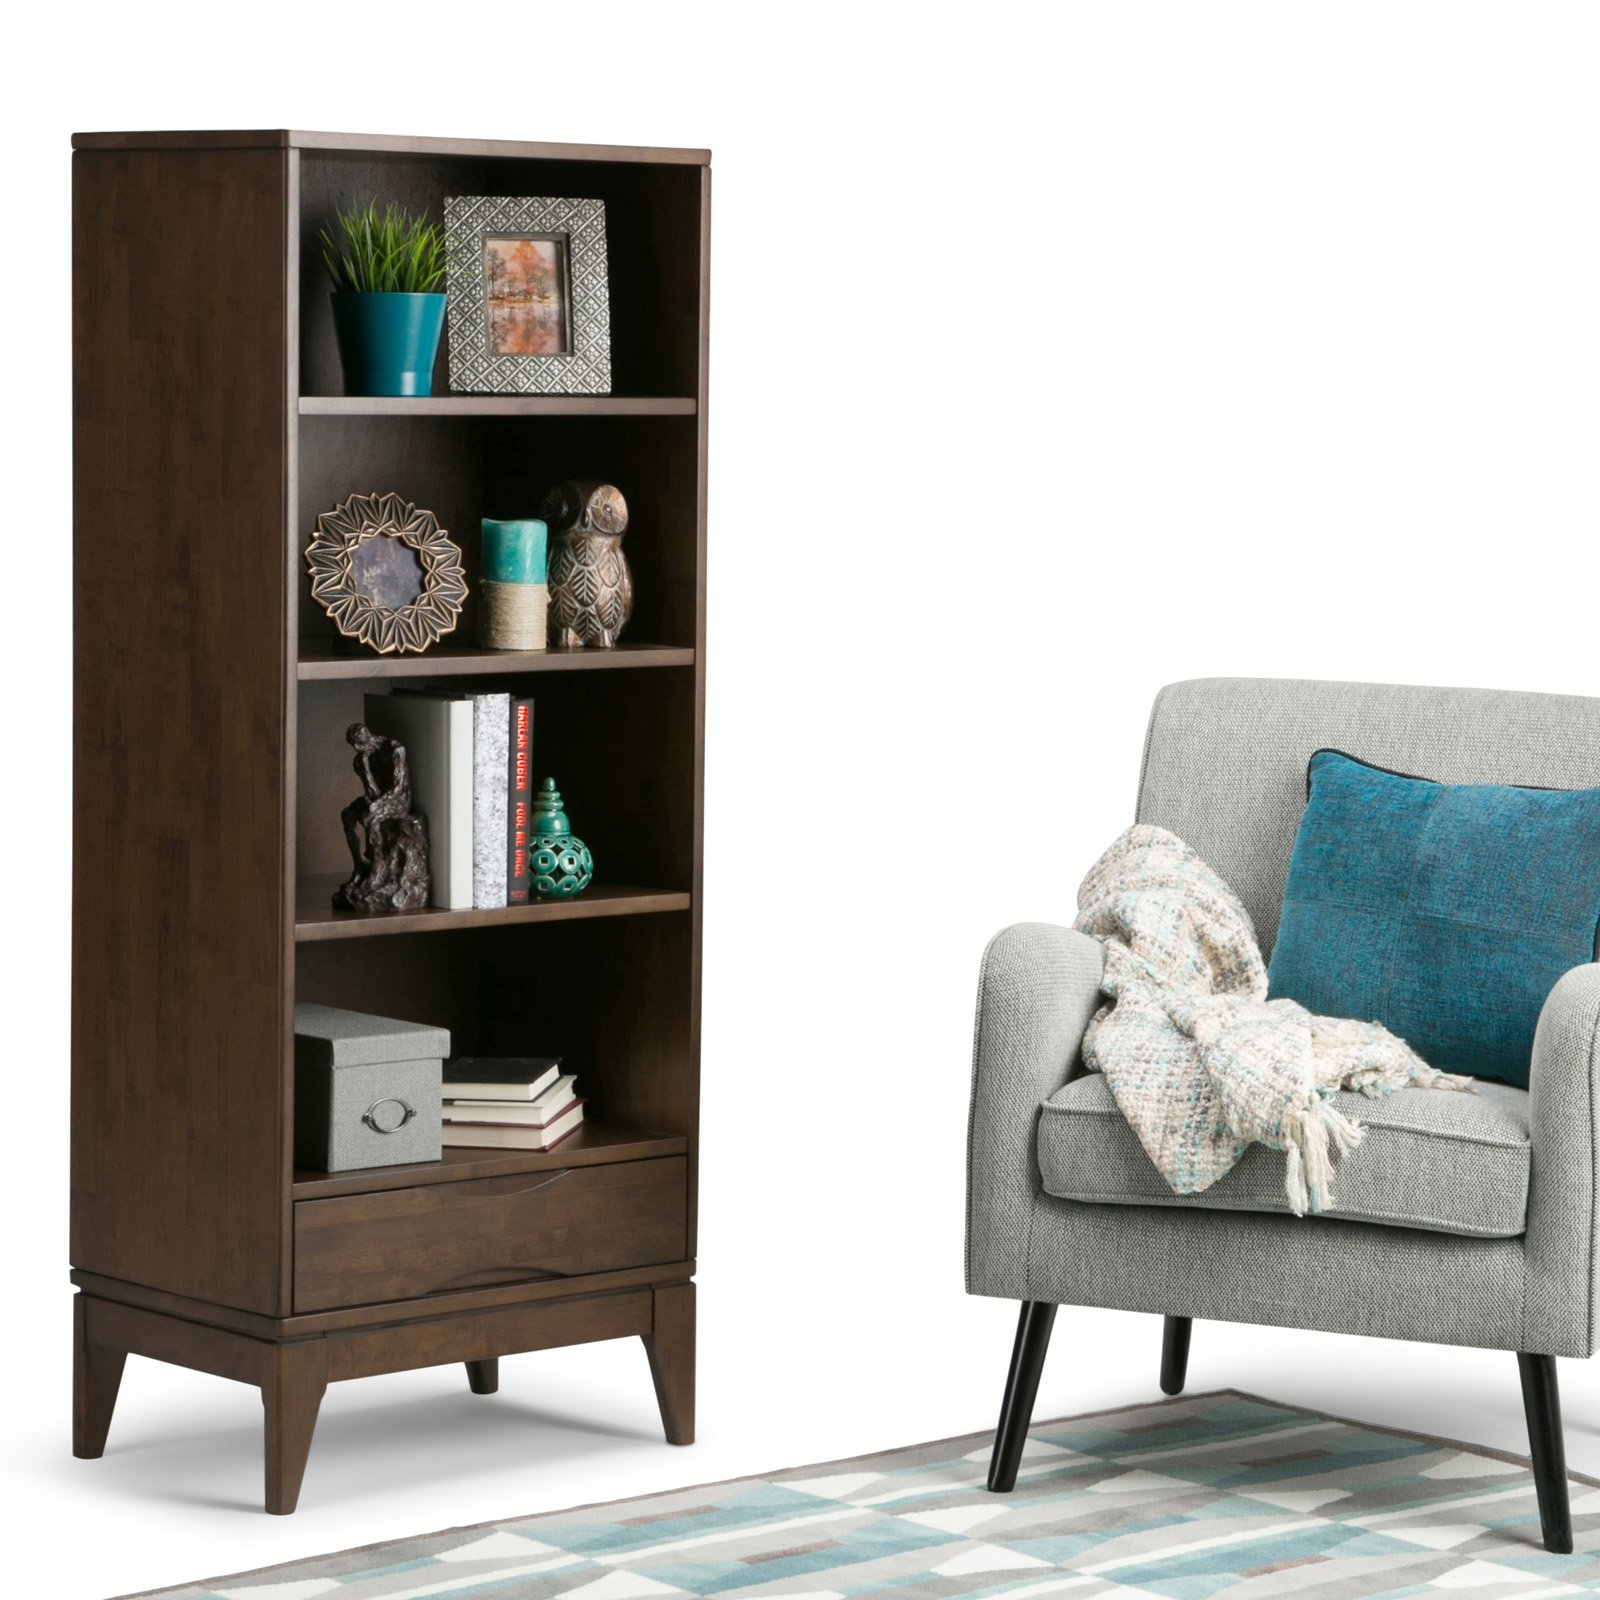 Simpli Home Harper Bookcase with Storage